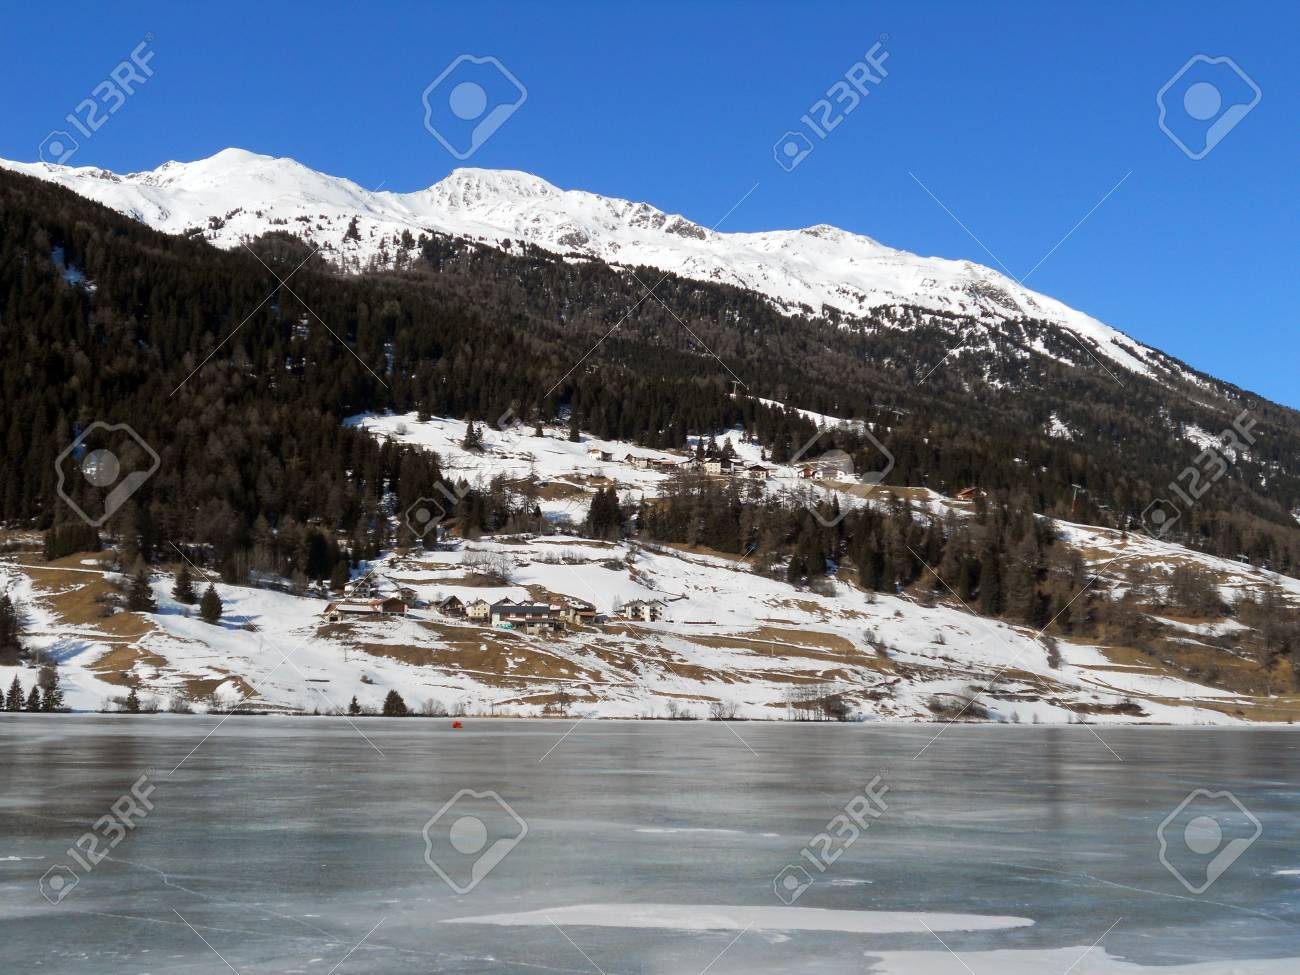 frozen lake in winter with blue sky and snow-capped mountains, Reschensee Stock Photo - 8954998